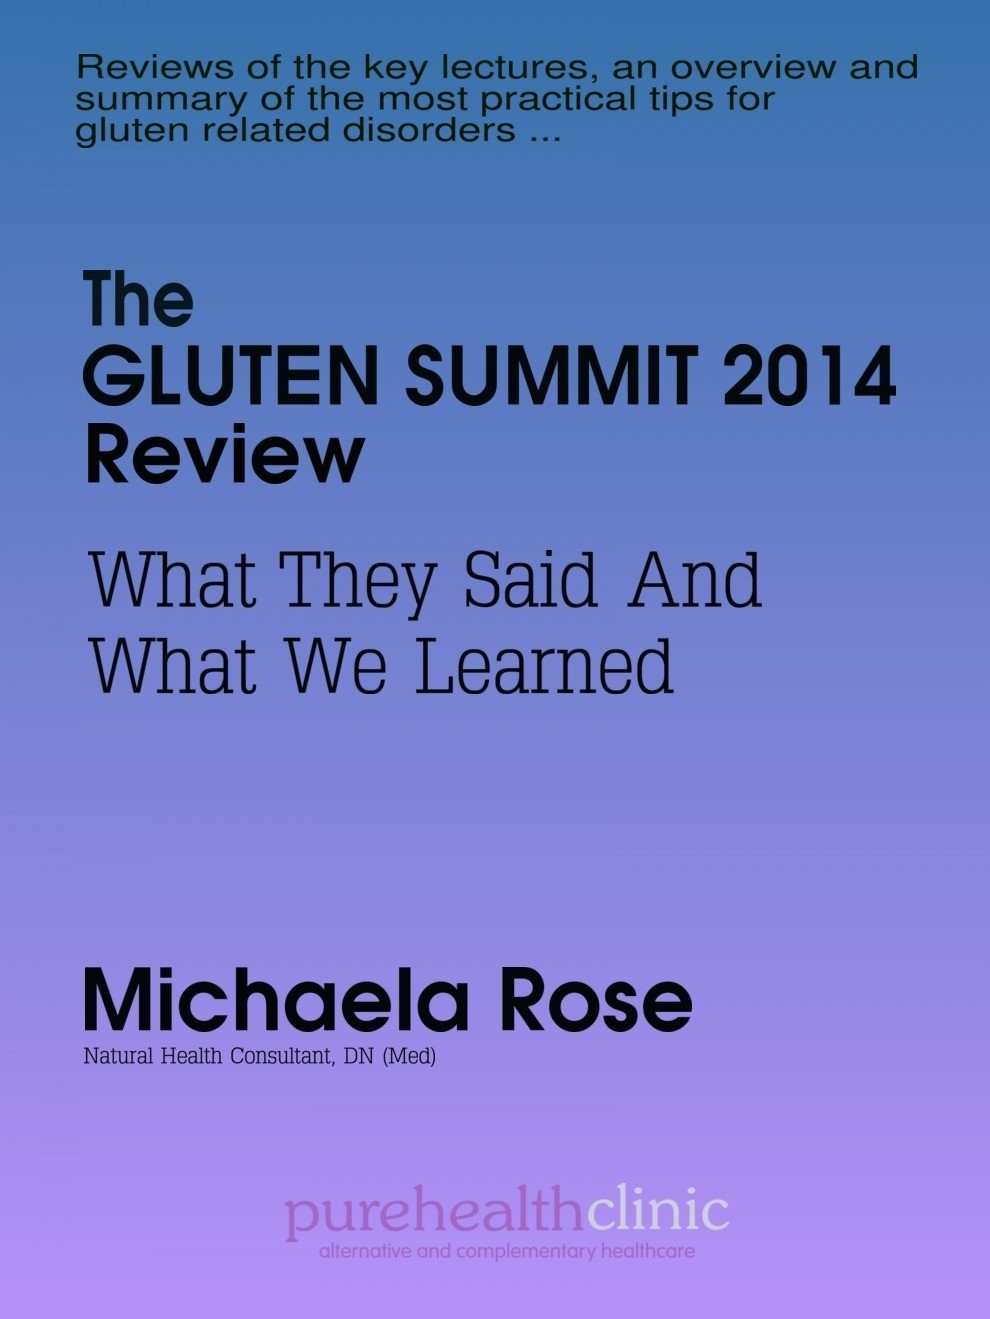 Gluten Summit Review 2014